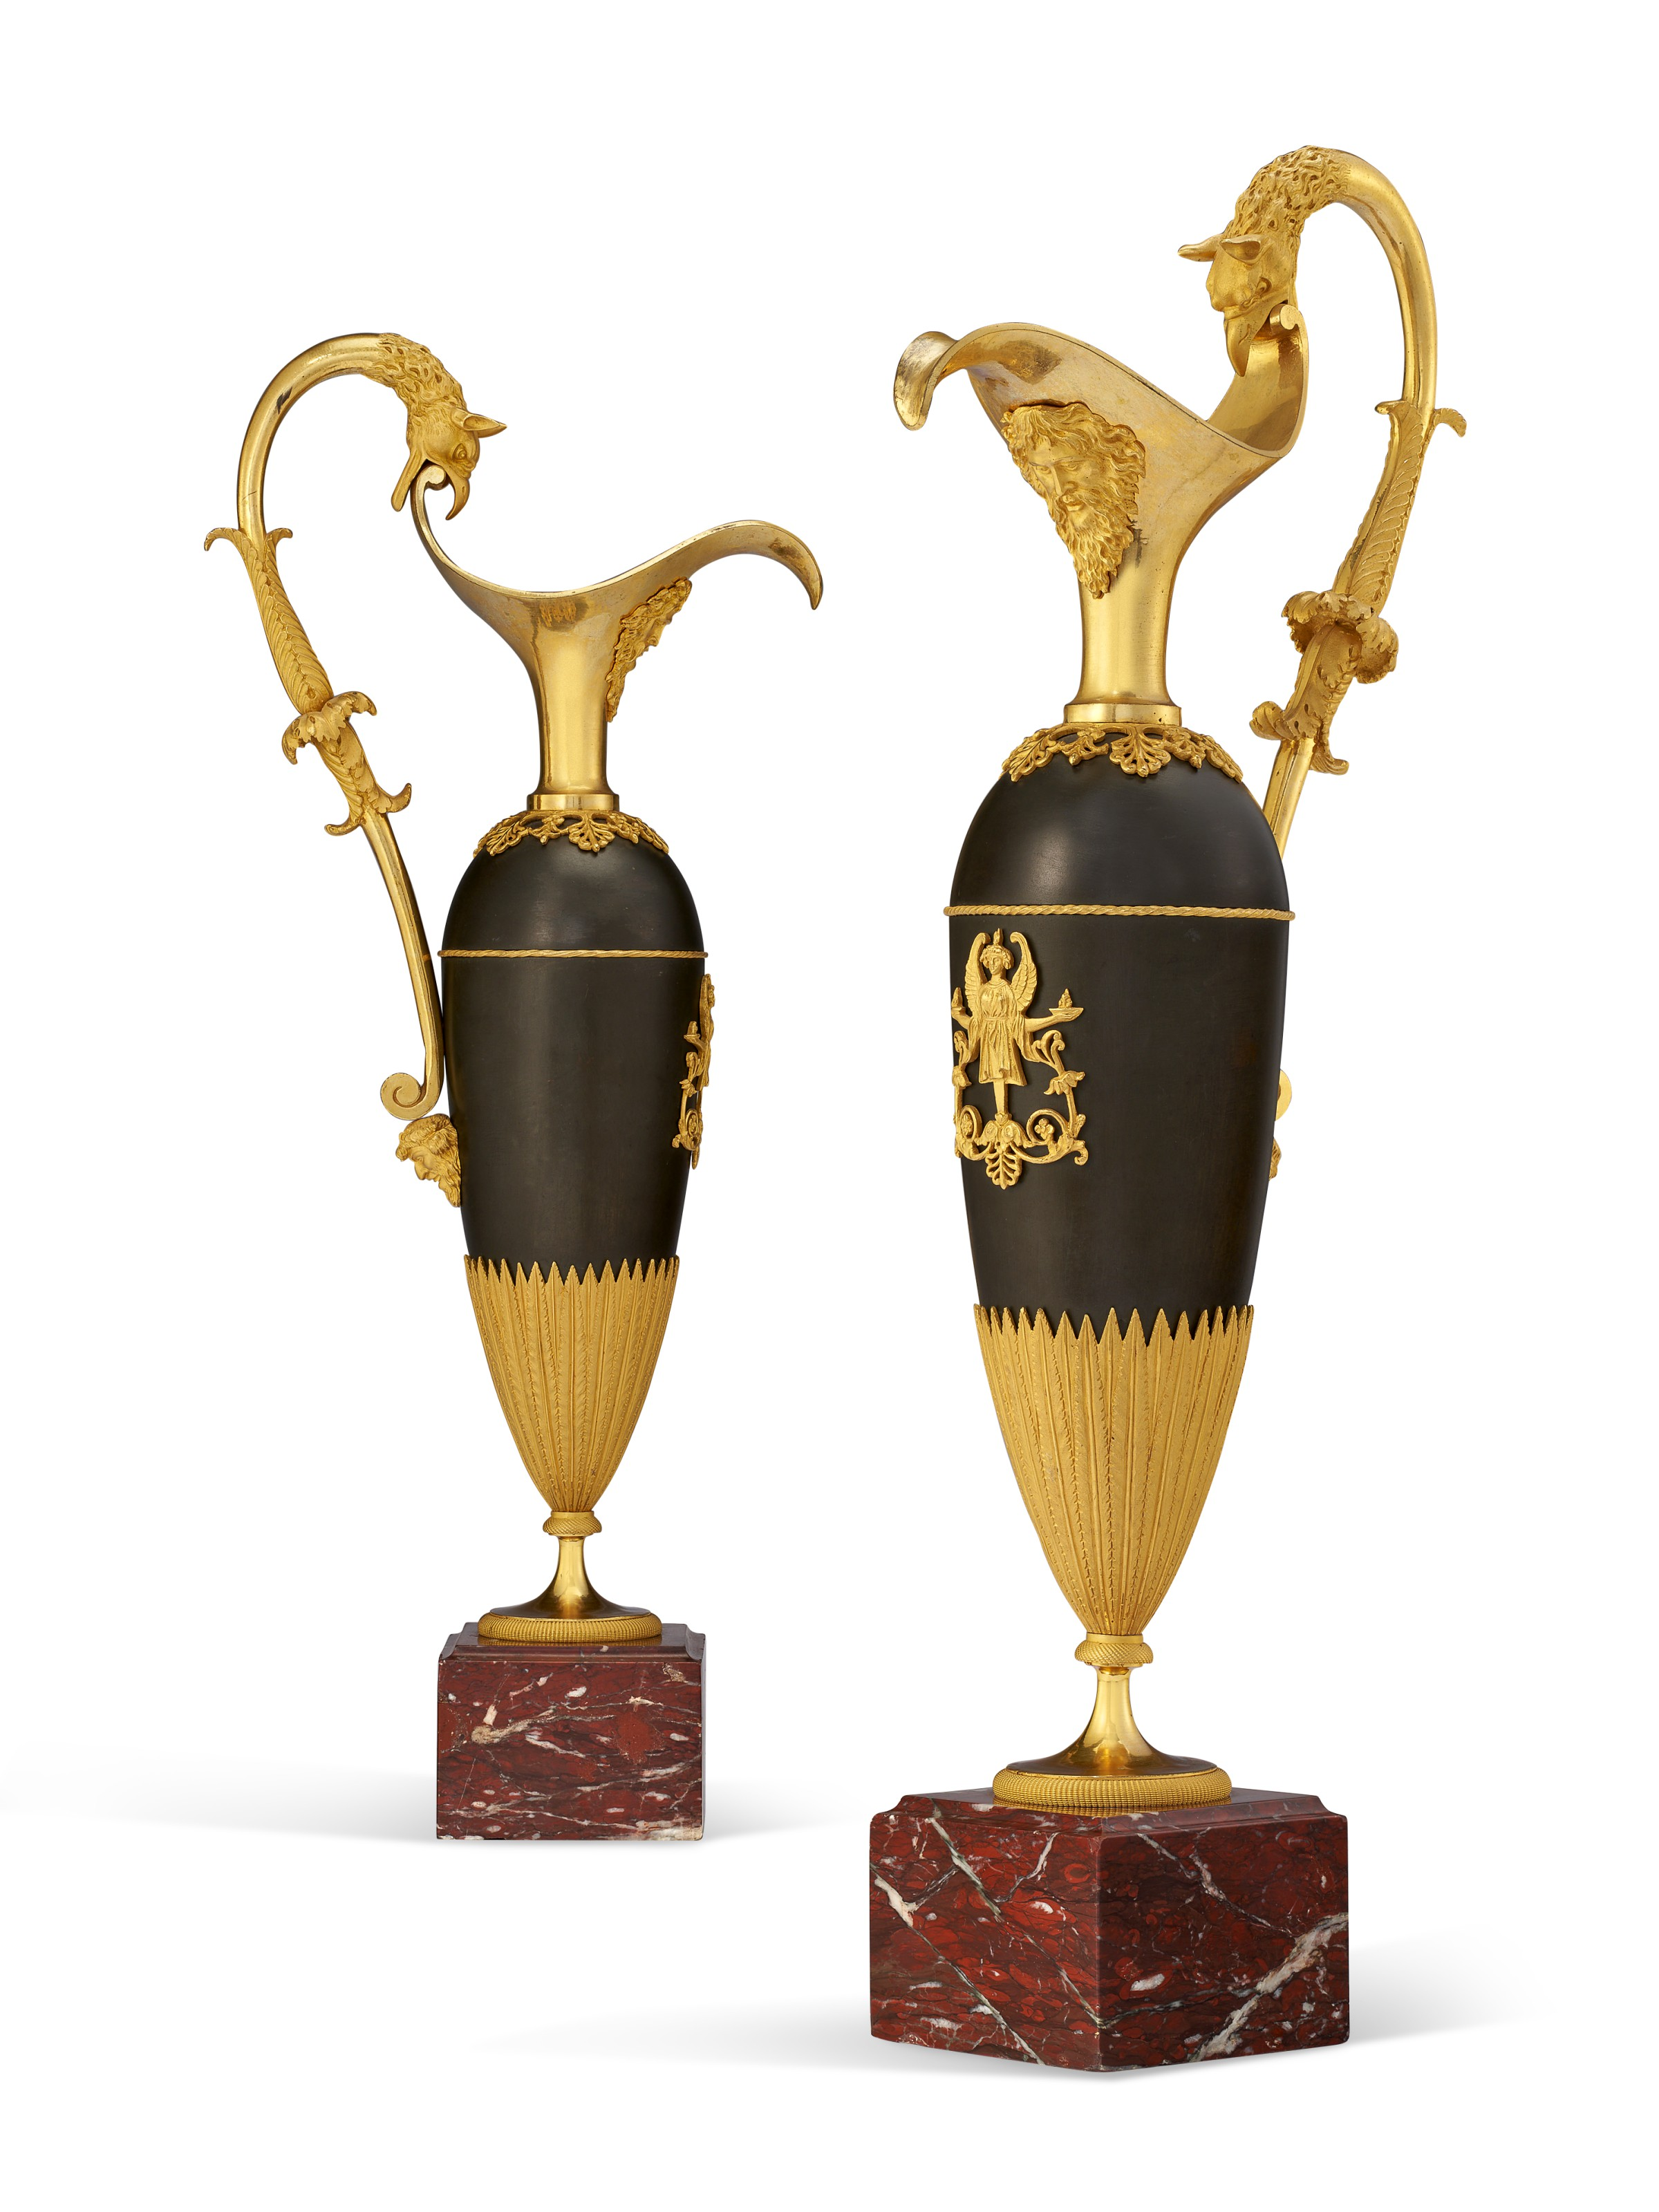 A pair of empire ormolu and patinated bronze ewers, attributed to Claude Galle, c. 1805. 21½  in (55  cm) high. Estimate $10,000-15,000. Offered in The Collector English & European Furniture, Ceramics, Silver & Works of Art on 5-19 October 2021 at Christie's Online